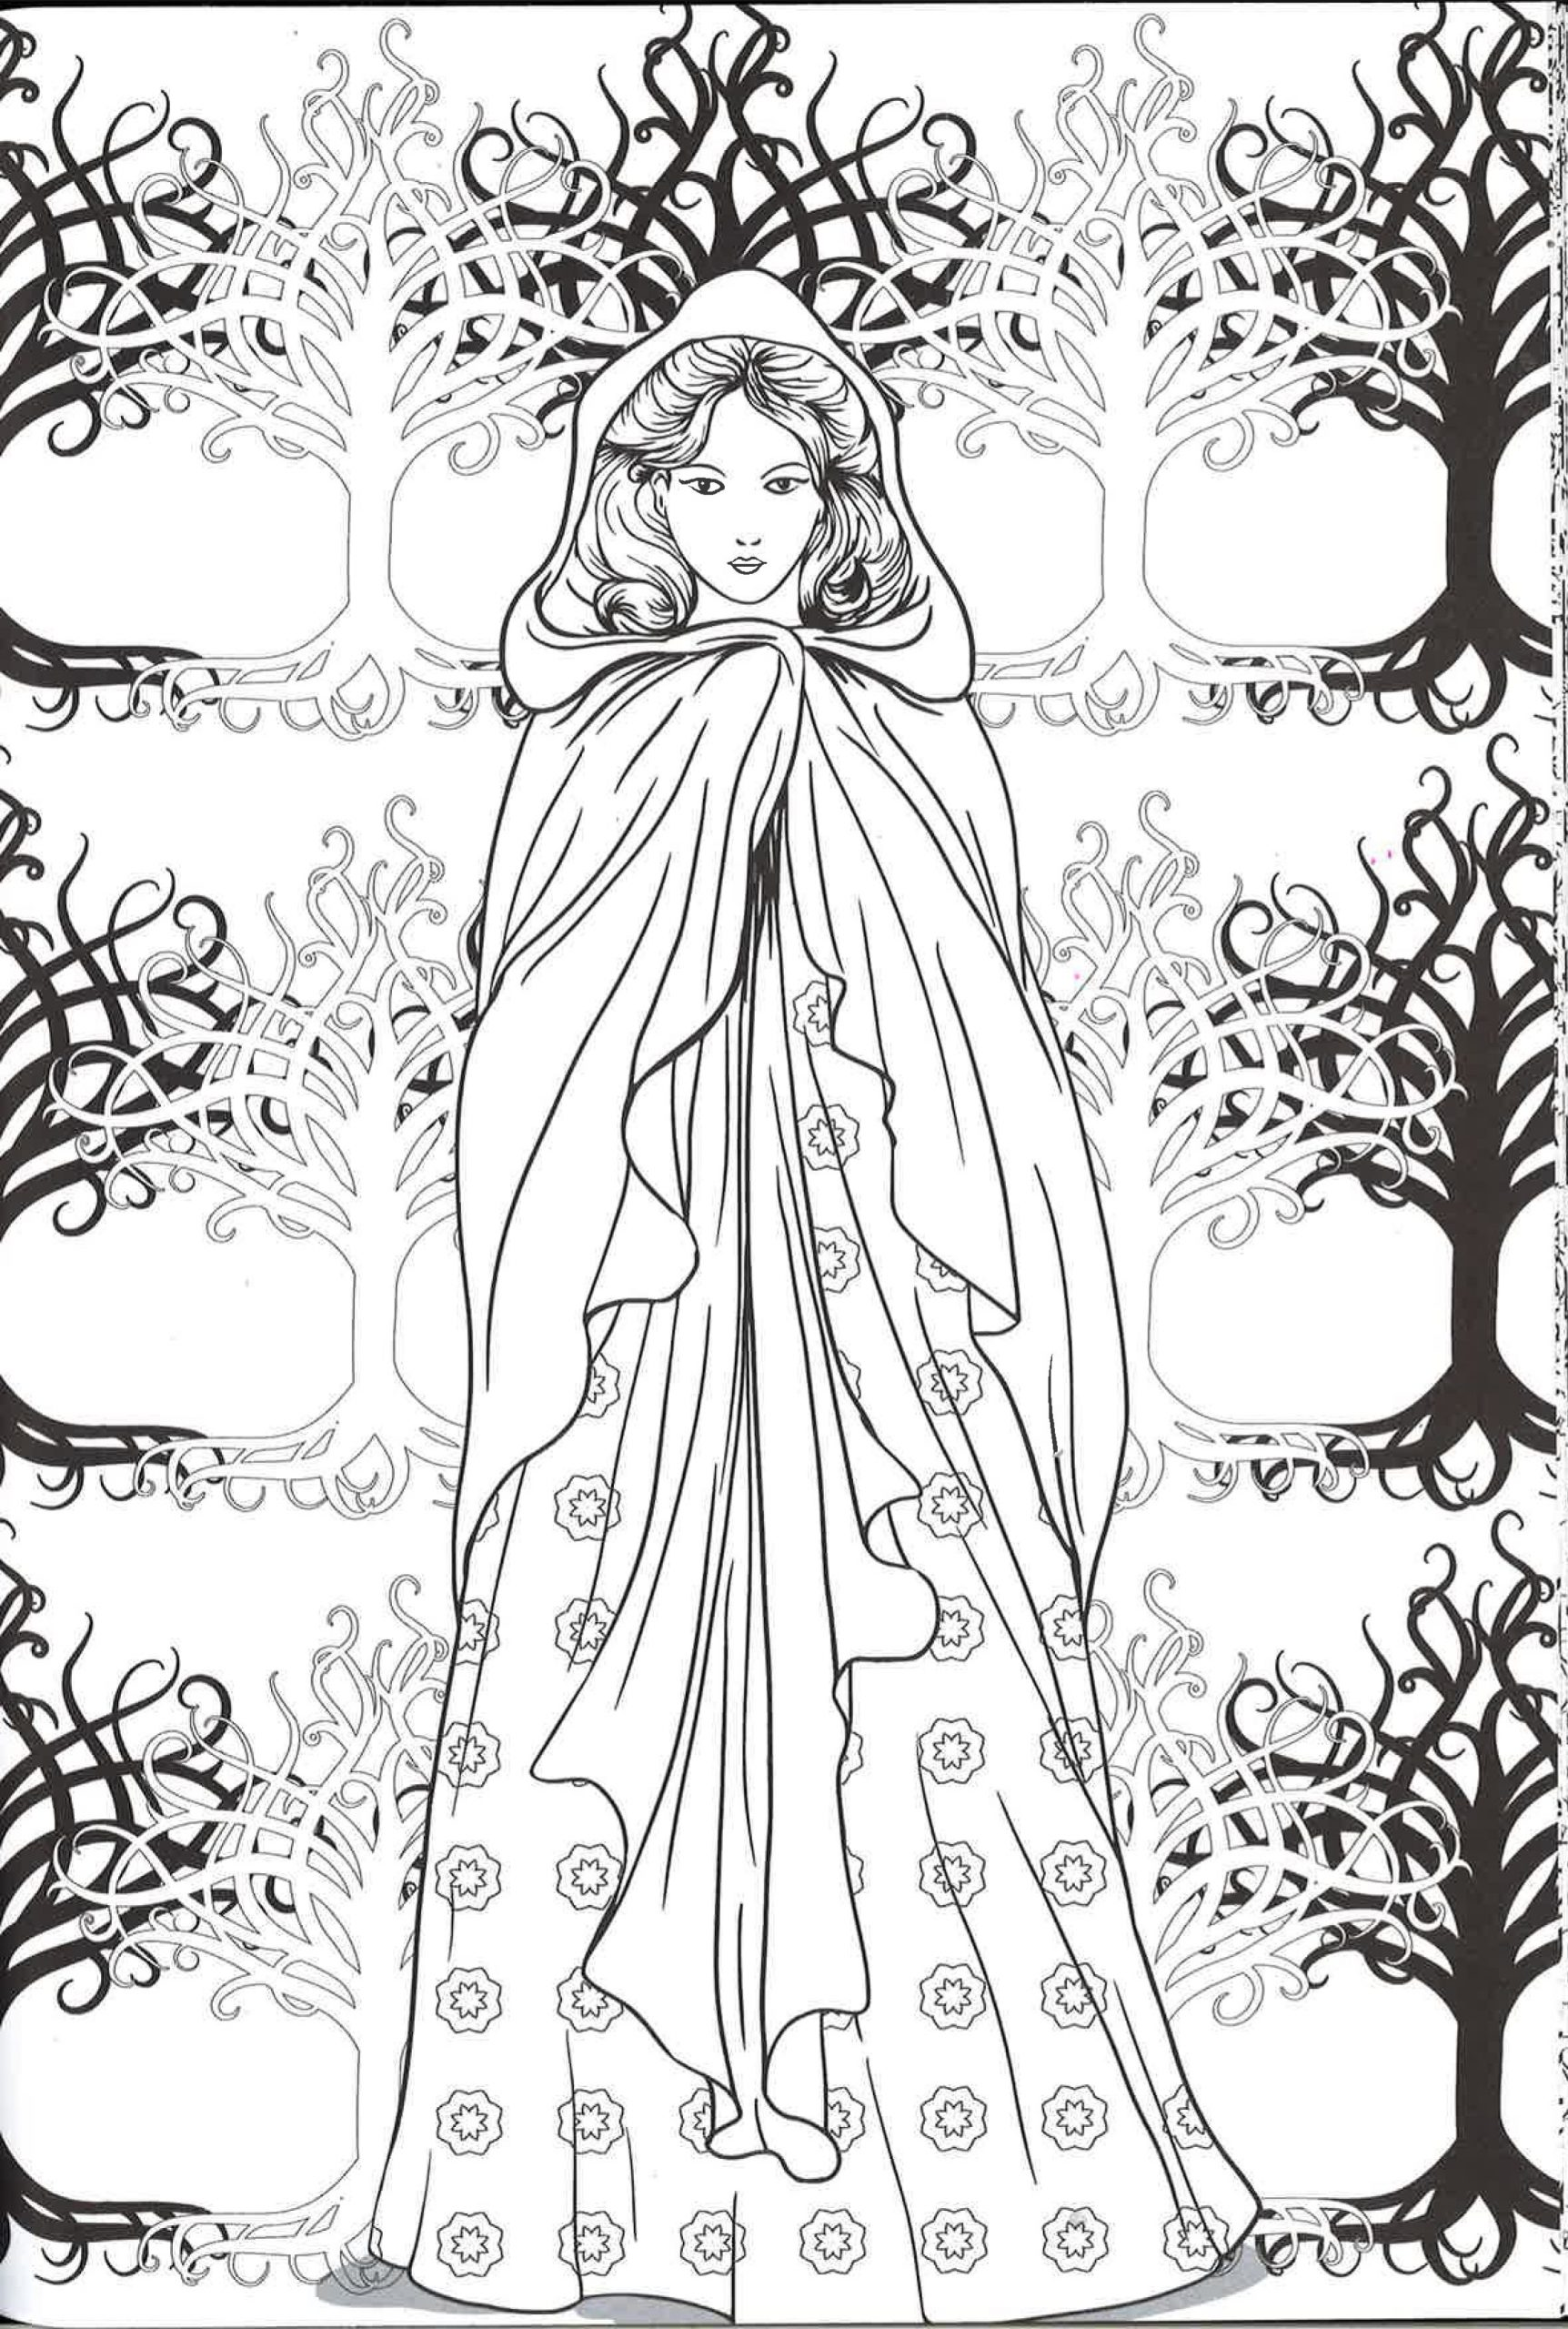 Pin On Crazy For Coloring concernant Personnage A Colorier